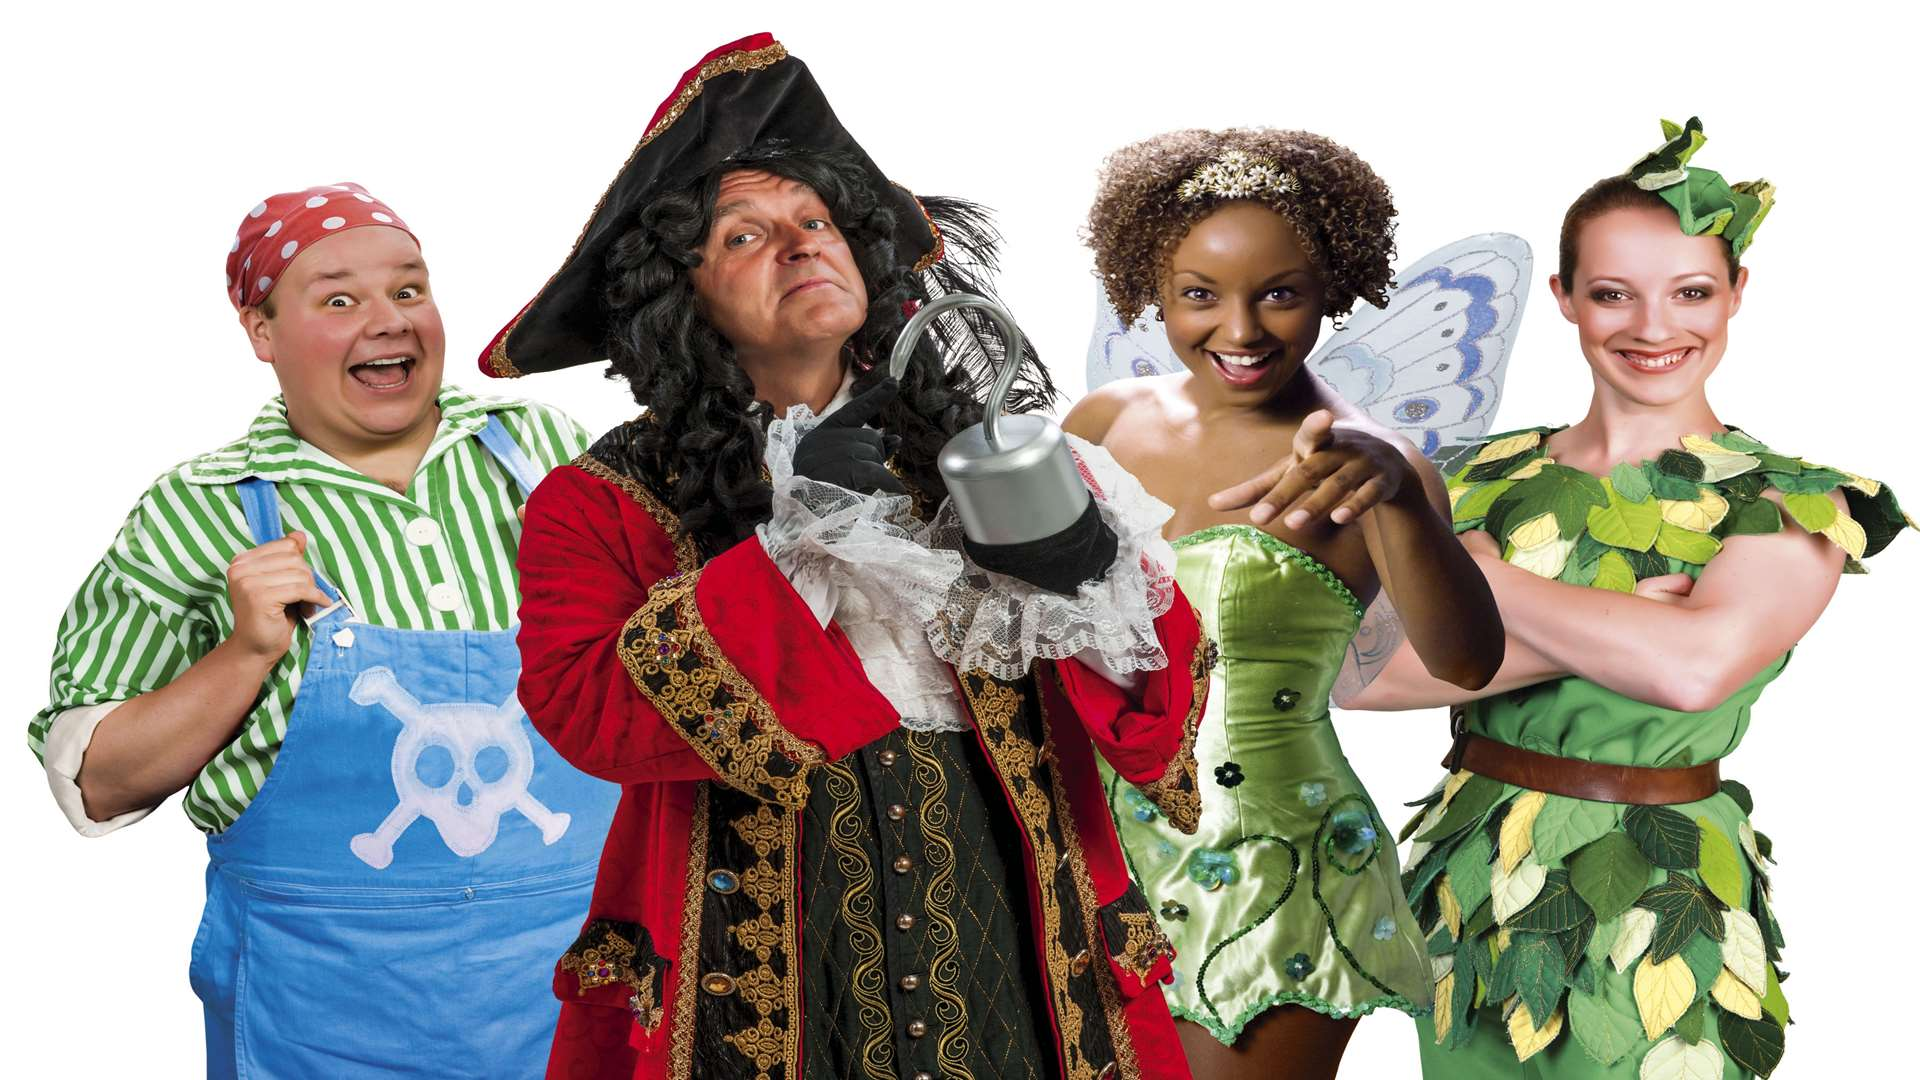 All the stops have been pulled out for this year's pantomime in Tunbridge Wells